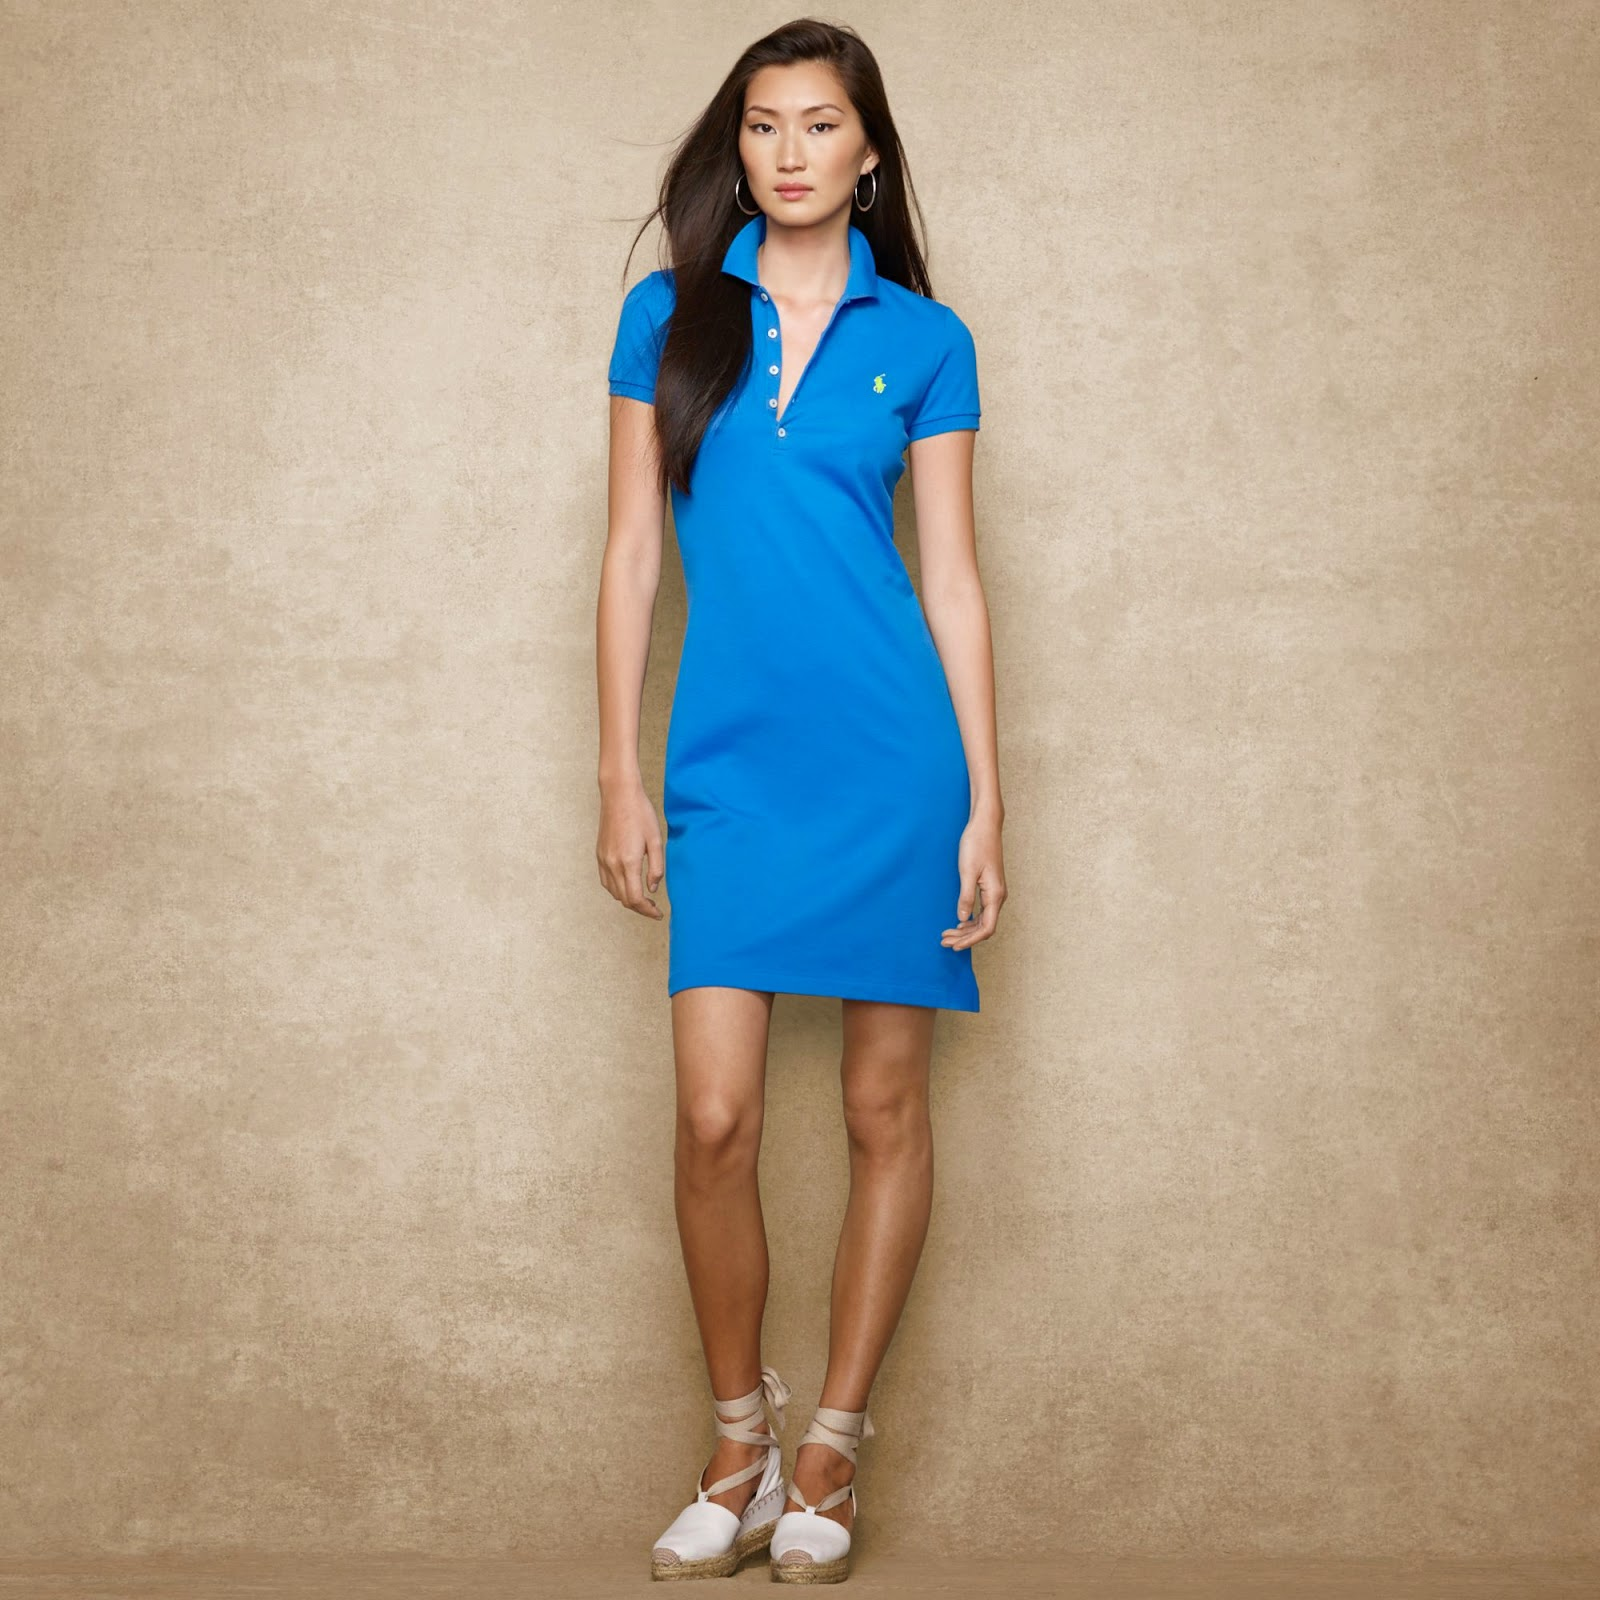 Inga Bloom\\u0026#39;ing: Preppy Ralph Lauren Polo Dress